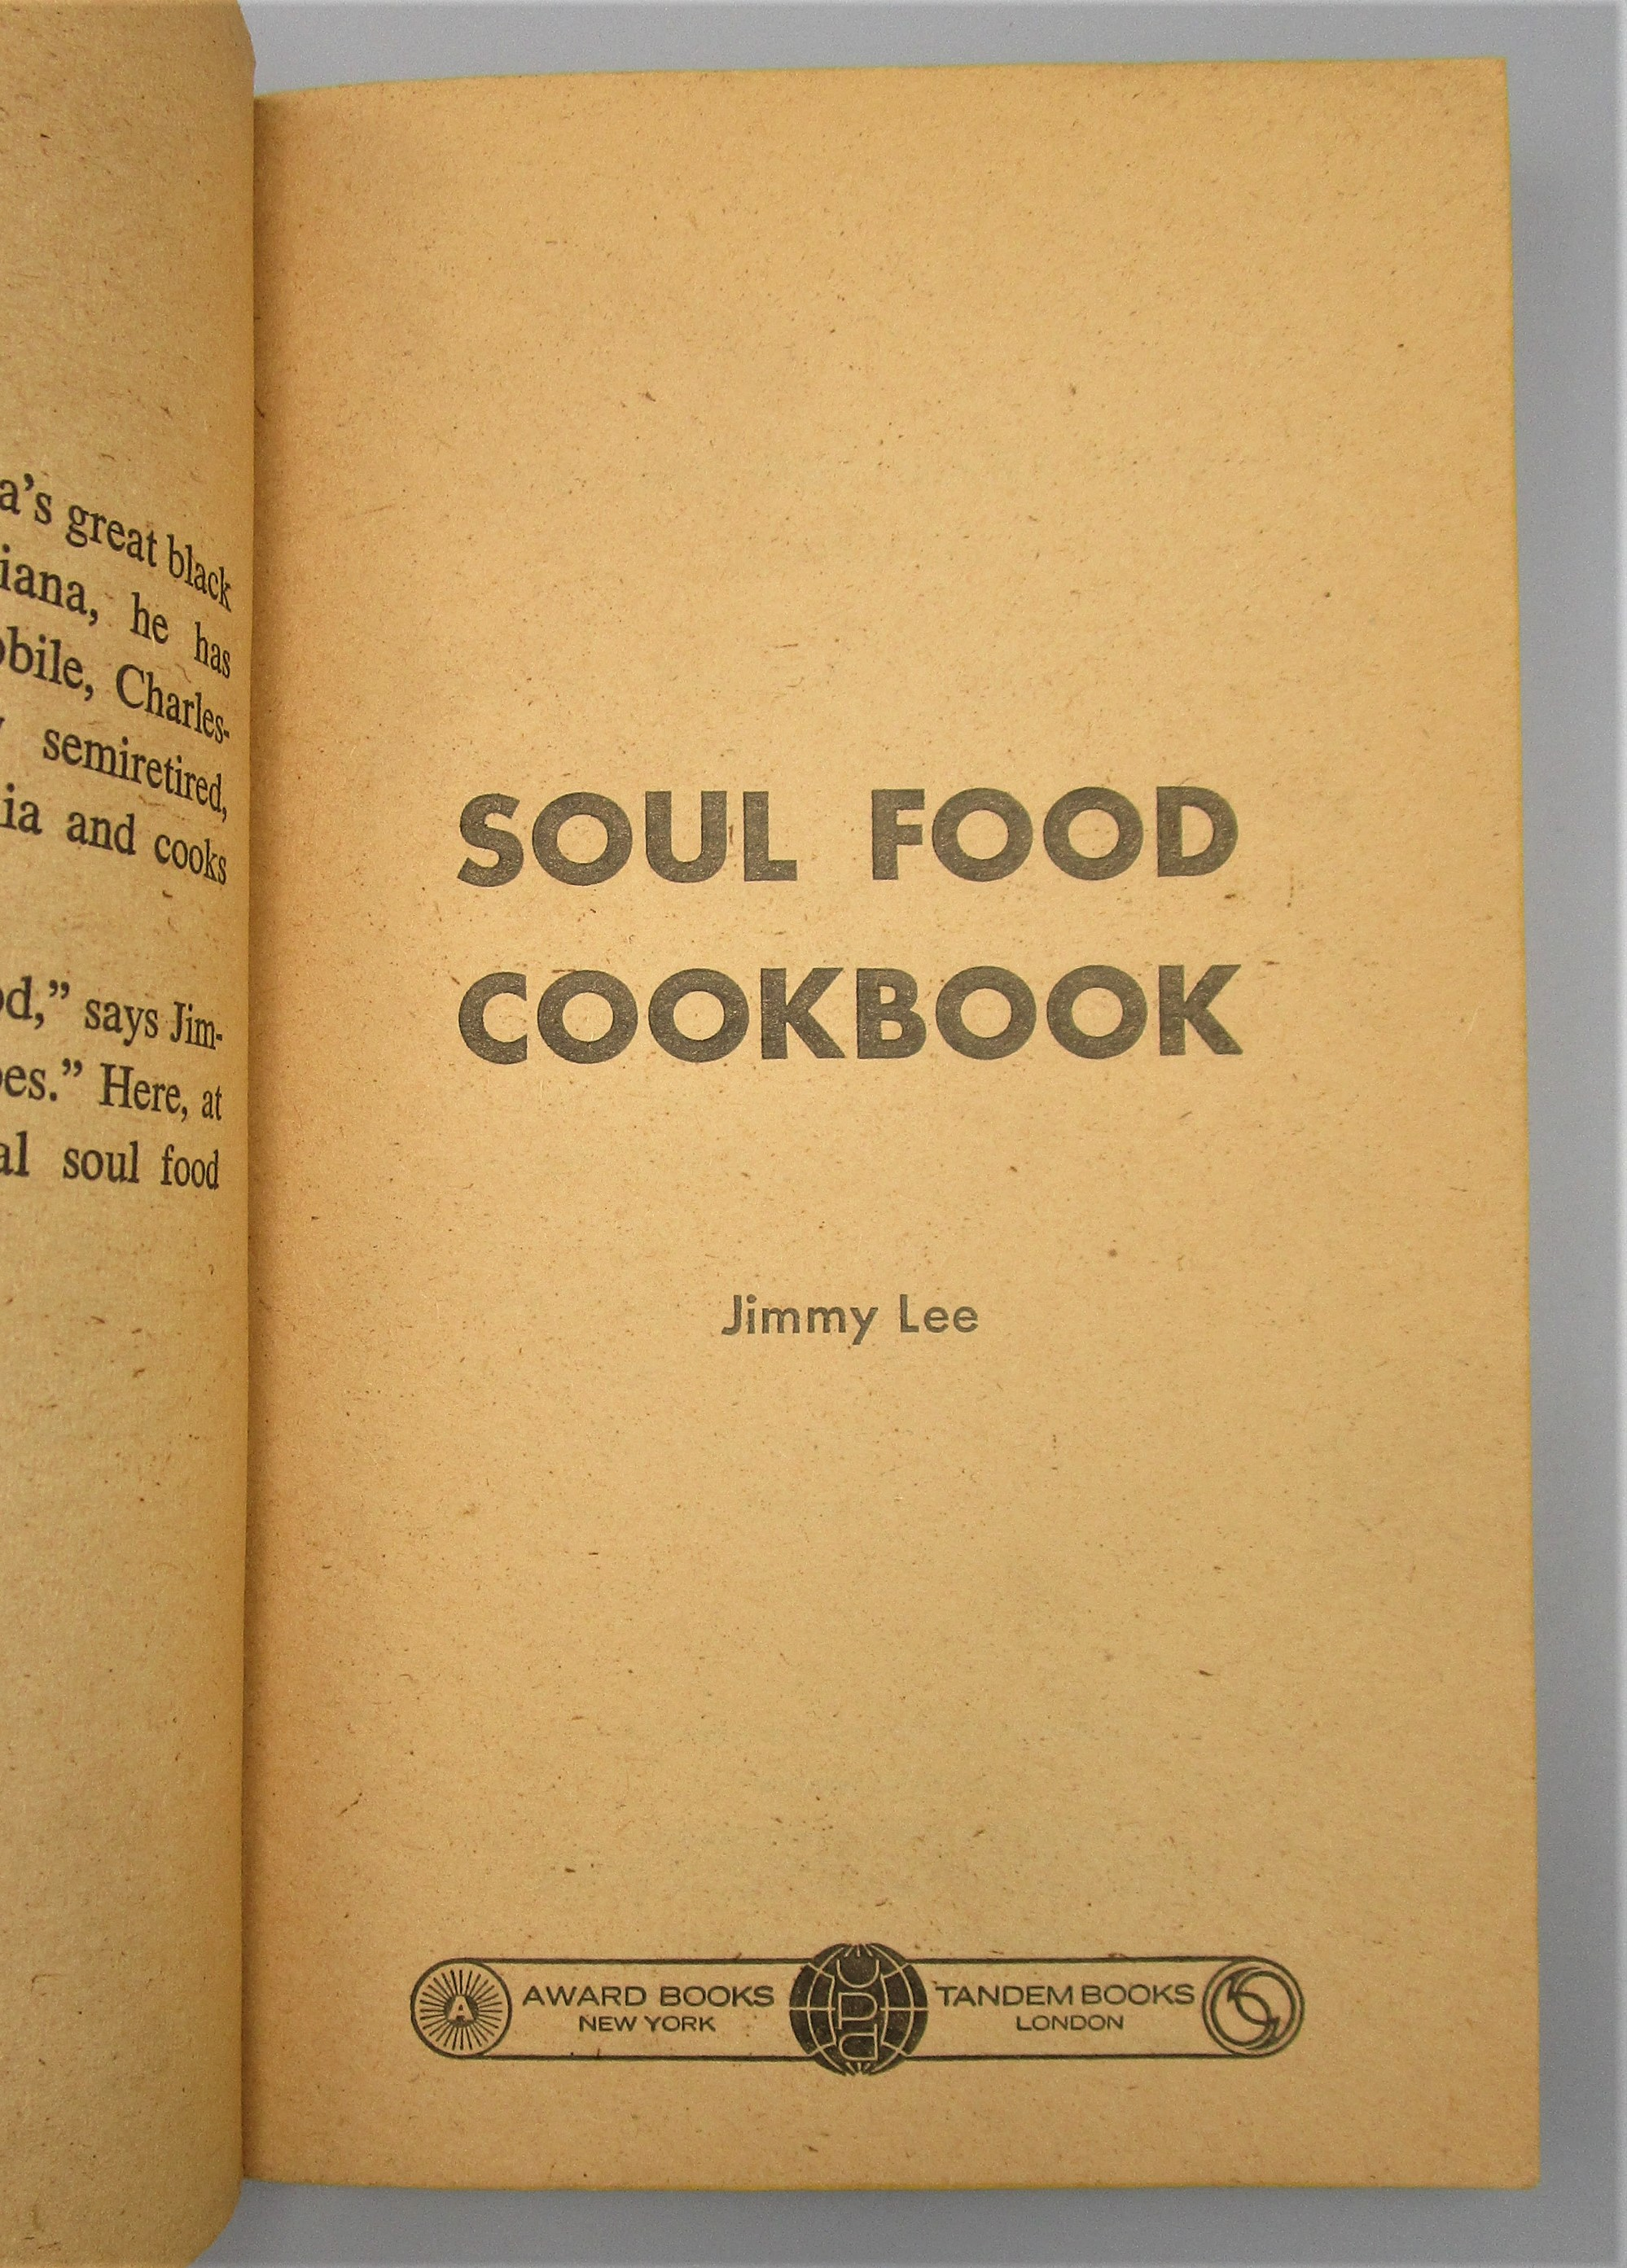 SOUL FOOD COOK BOOK, by Jimmy Lee - 1970